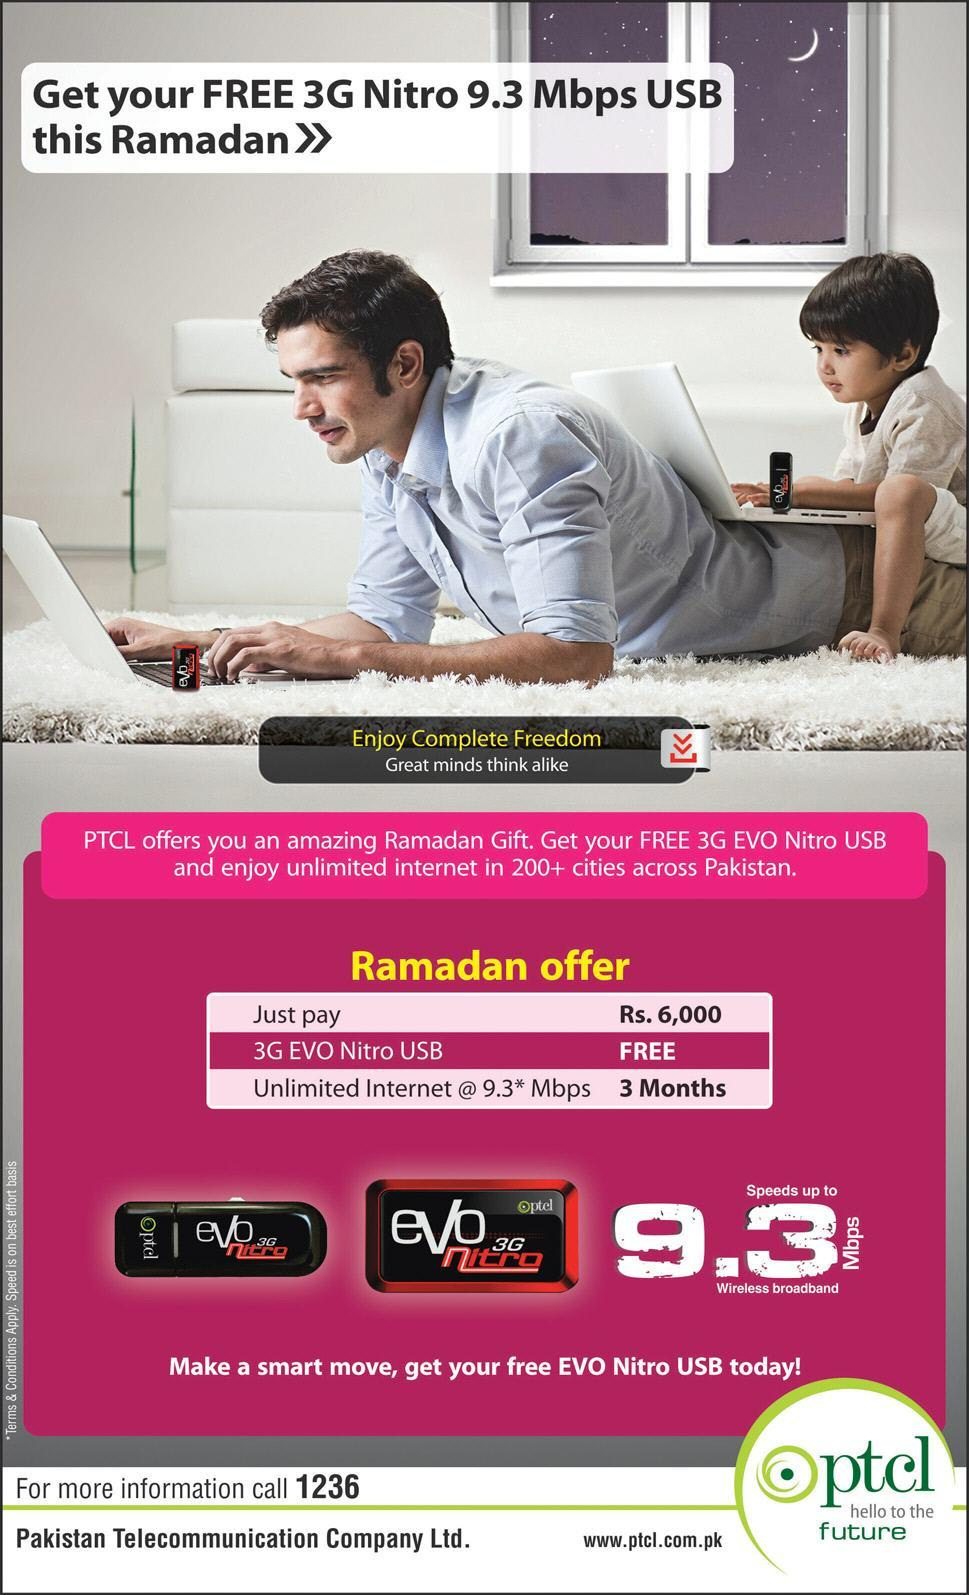 Get Your Free 3G Nitro 9.3 Mbps USB This Ramadan